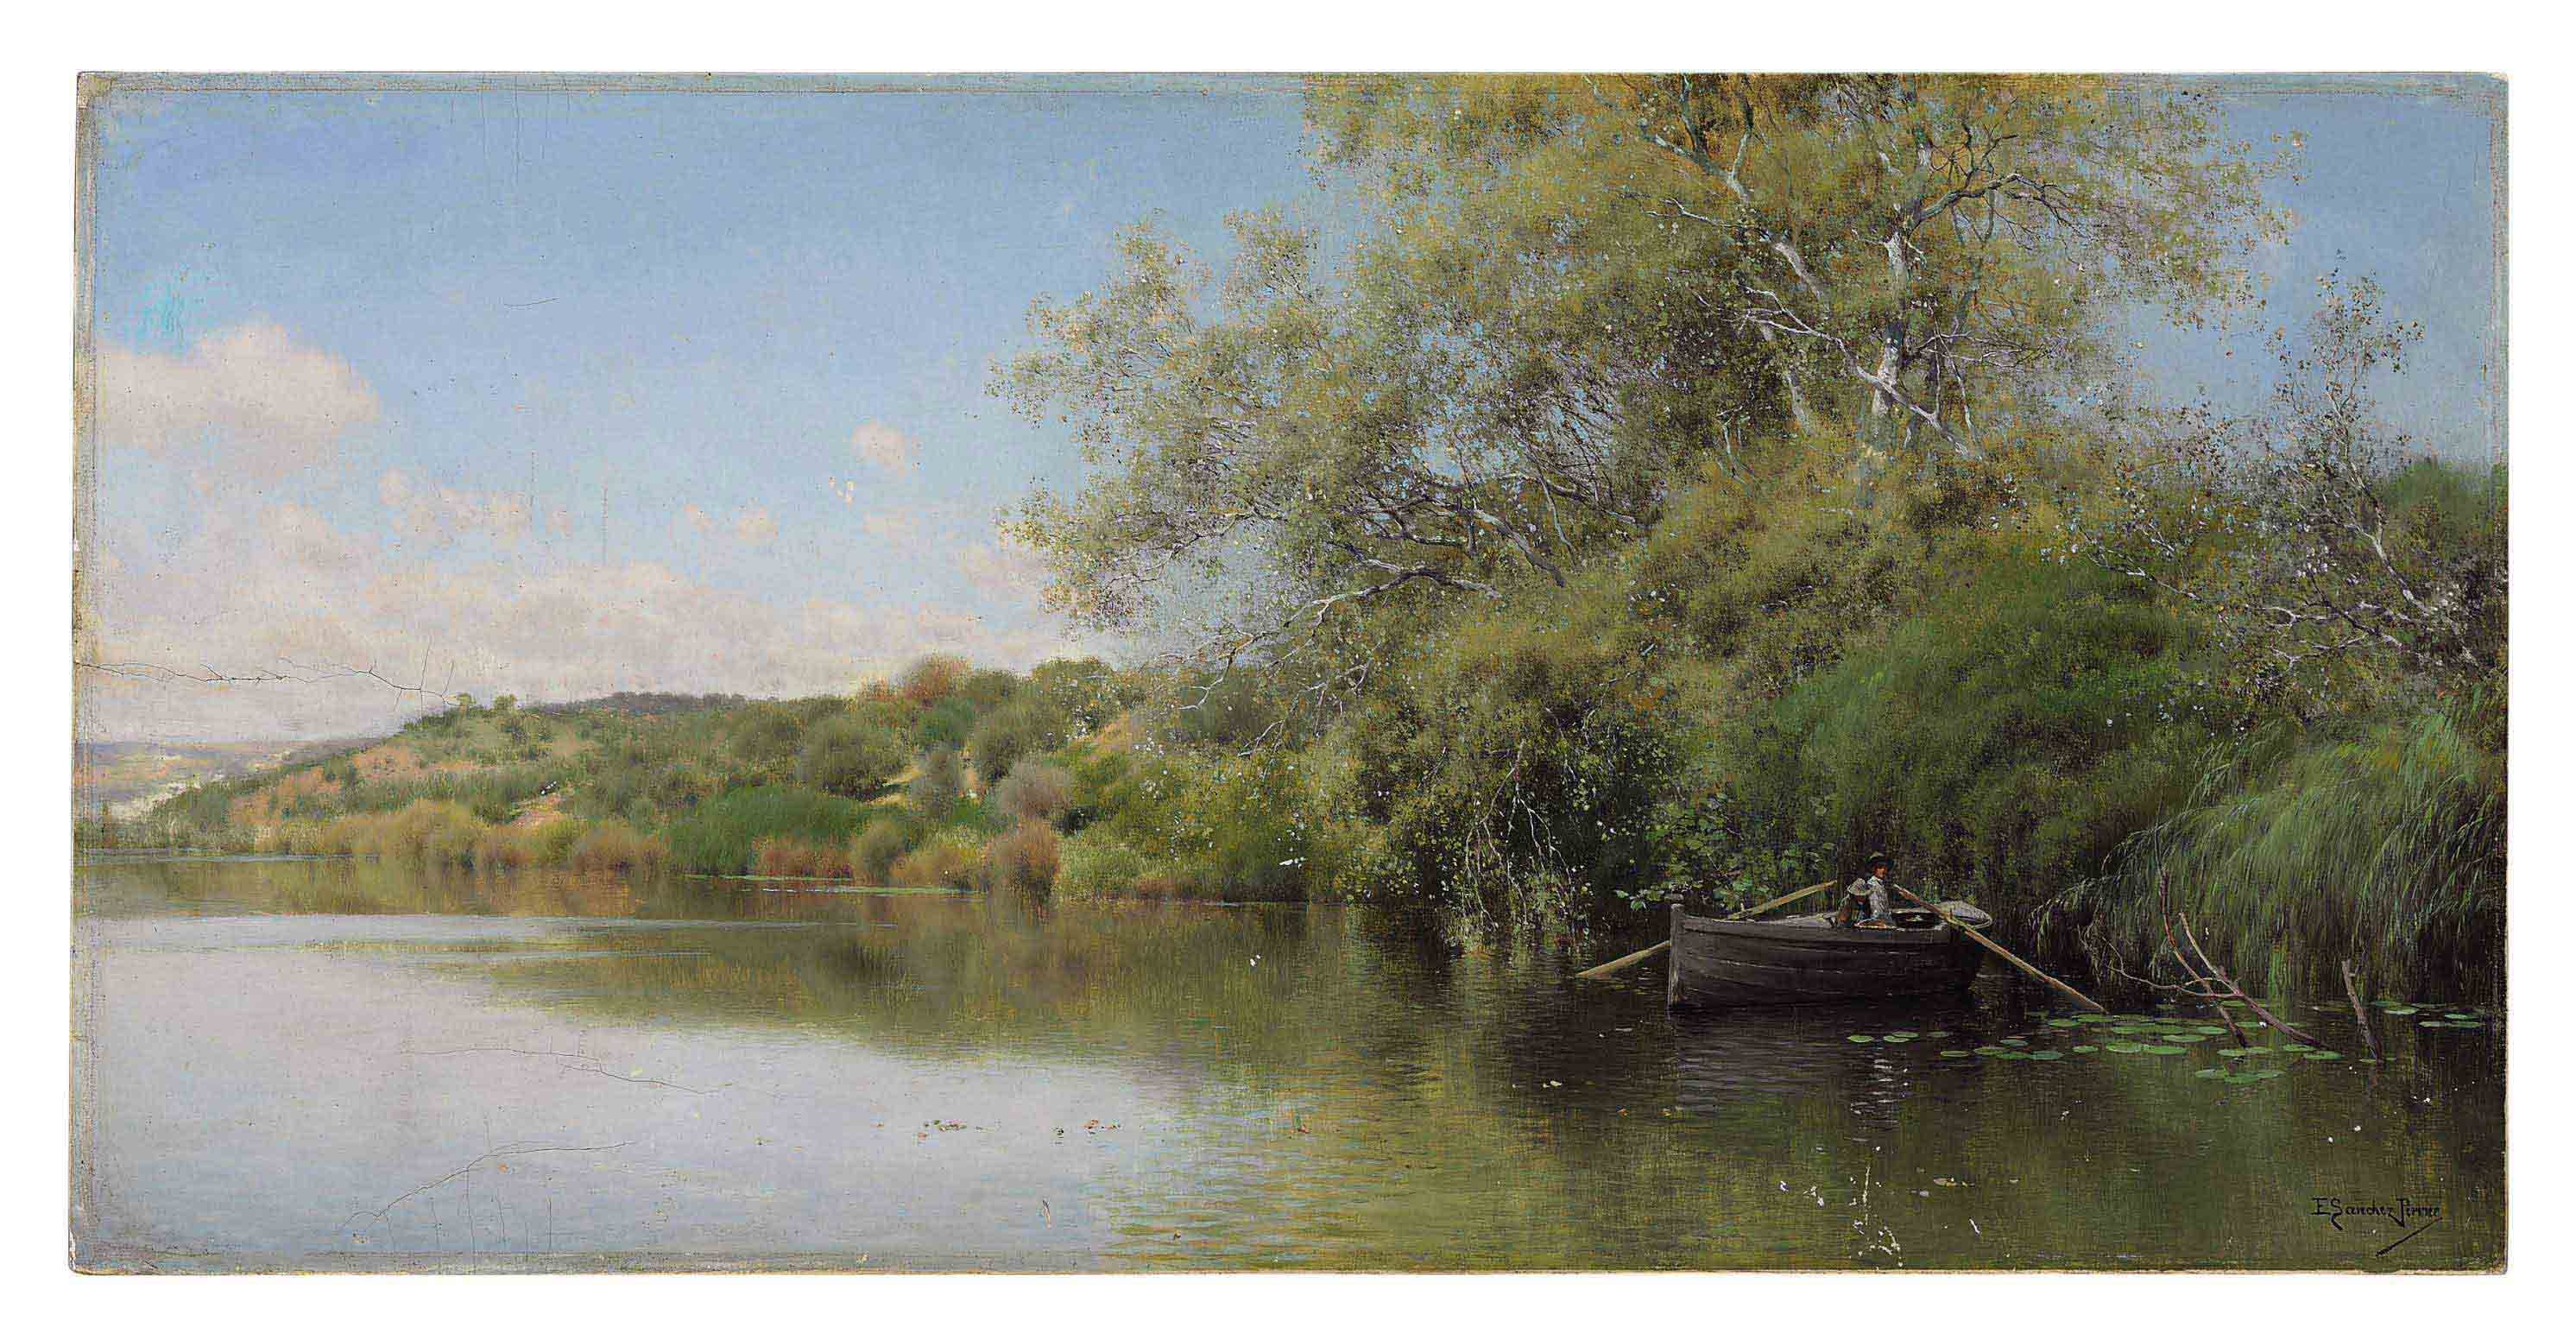 Fishermen on a Tranquil River